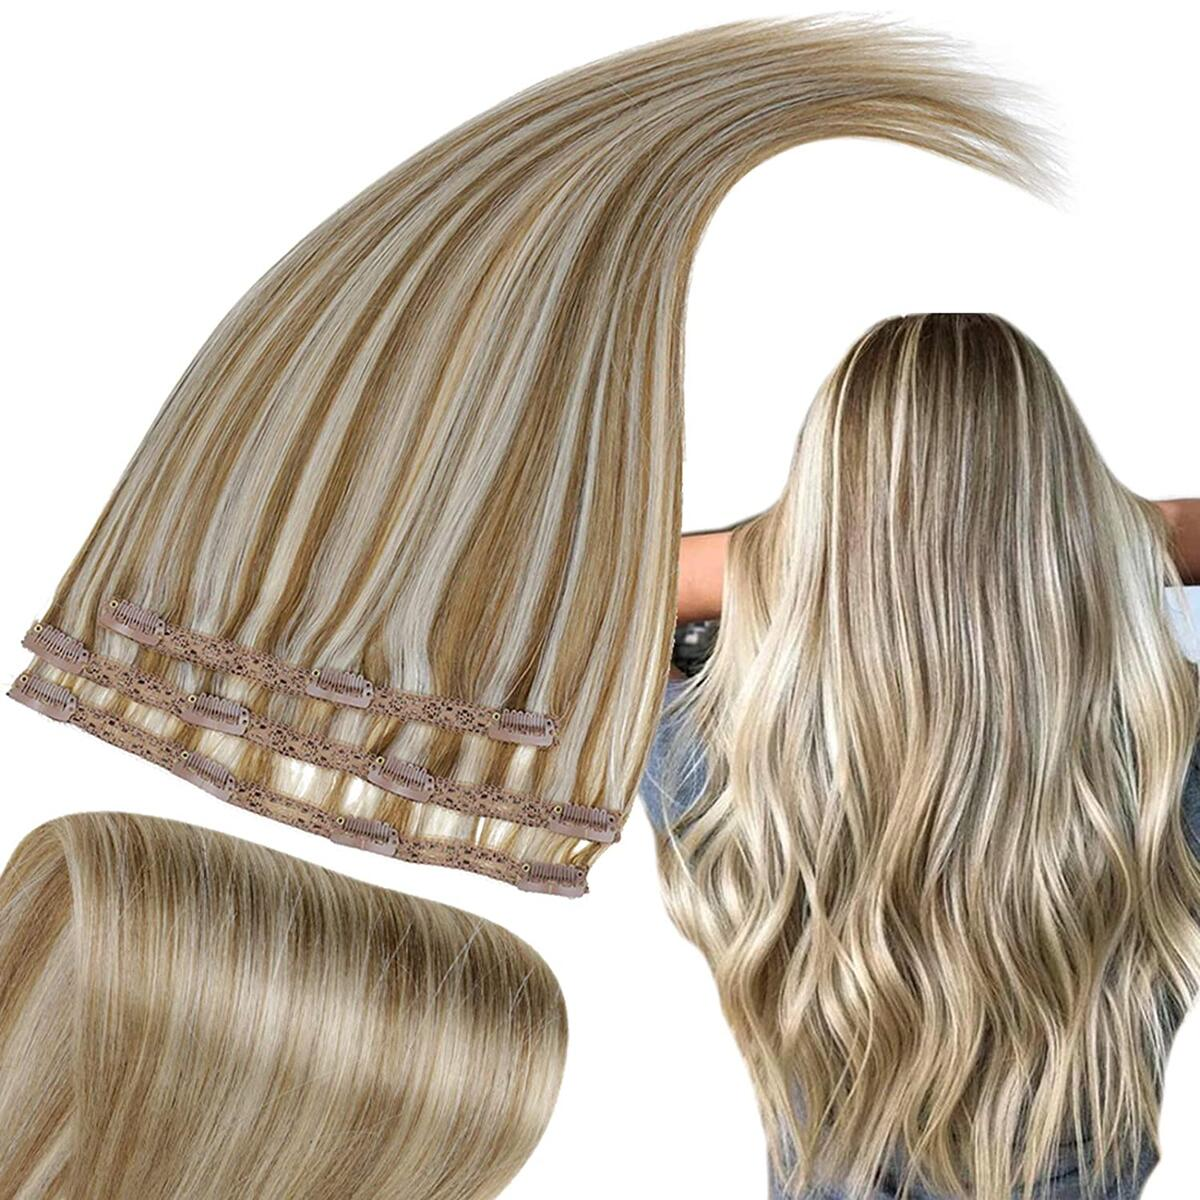 RUNATURE Clip in Hair Extensions 12 Inches Color 10P613 Golden Brown Highlighted Bleach Blonde 50g 3 Pieces 50g Real Human Hair Extensions for Woman